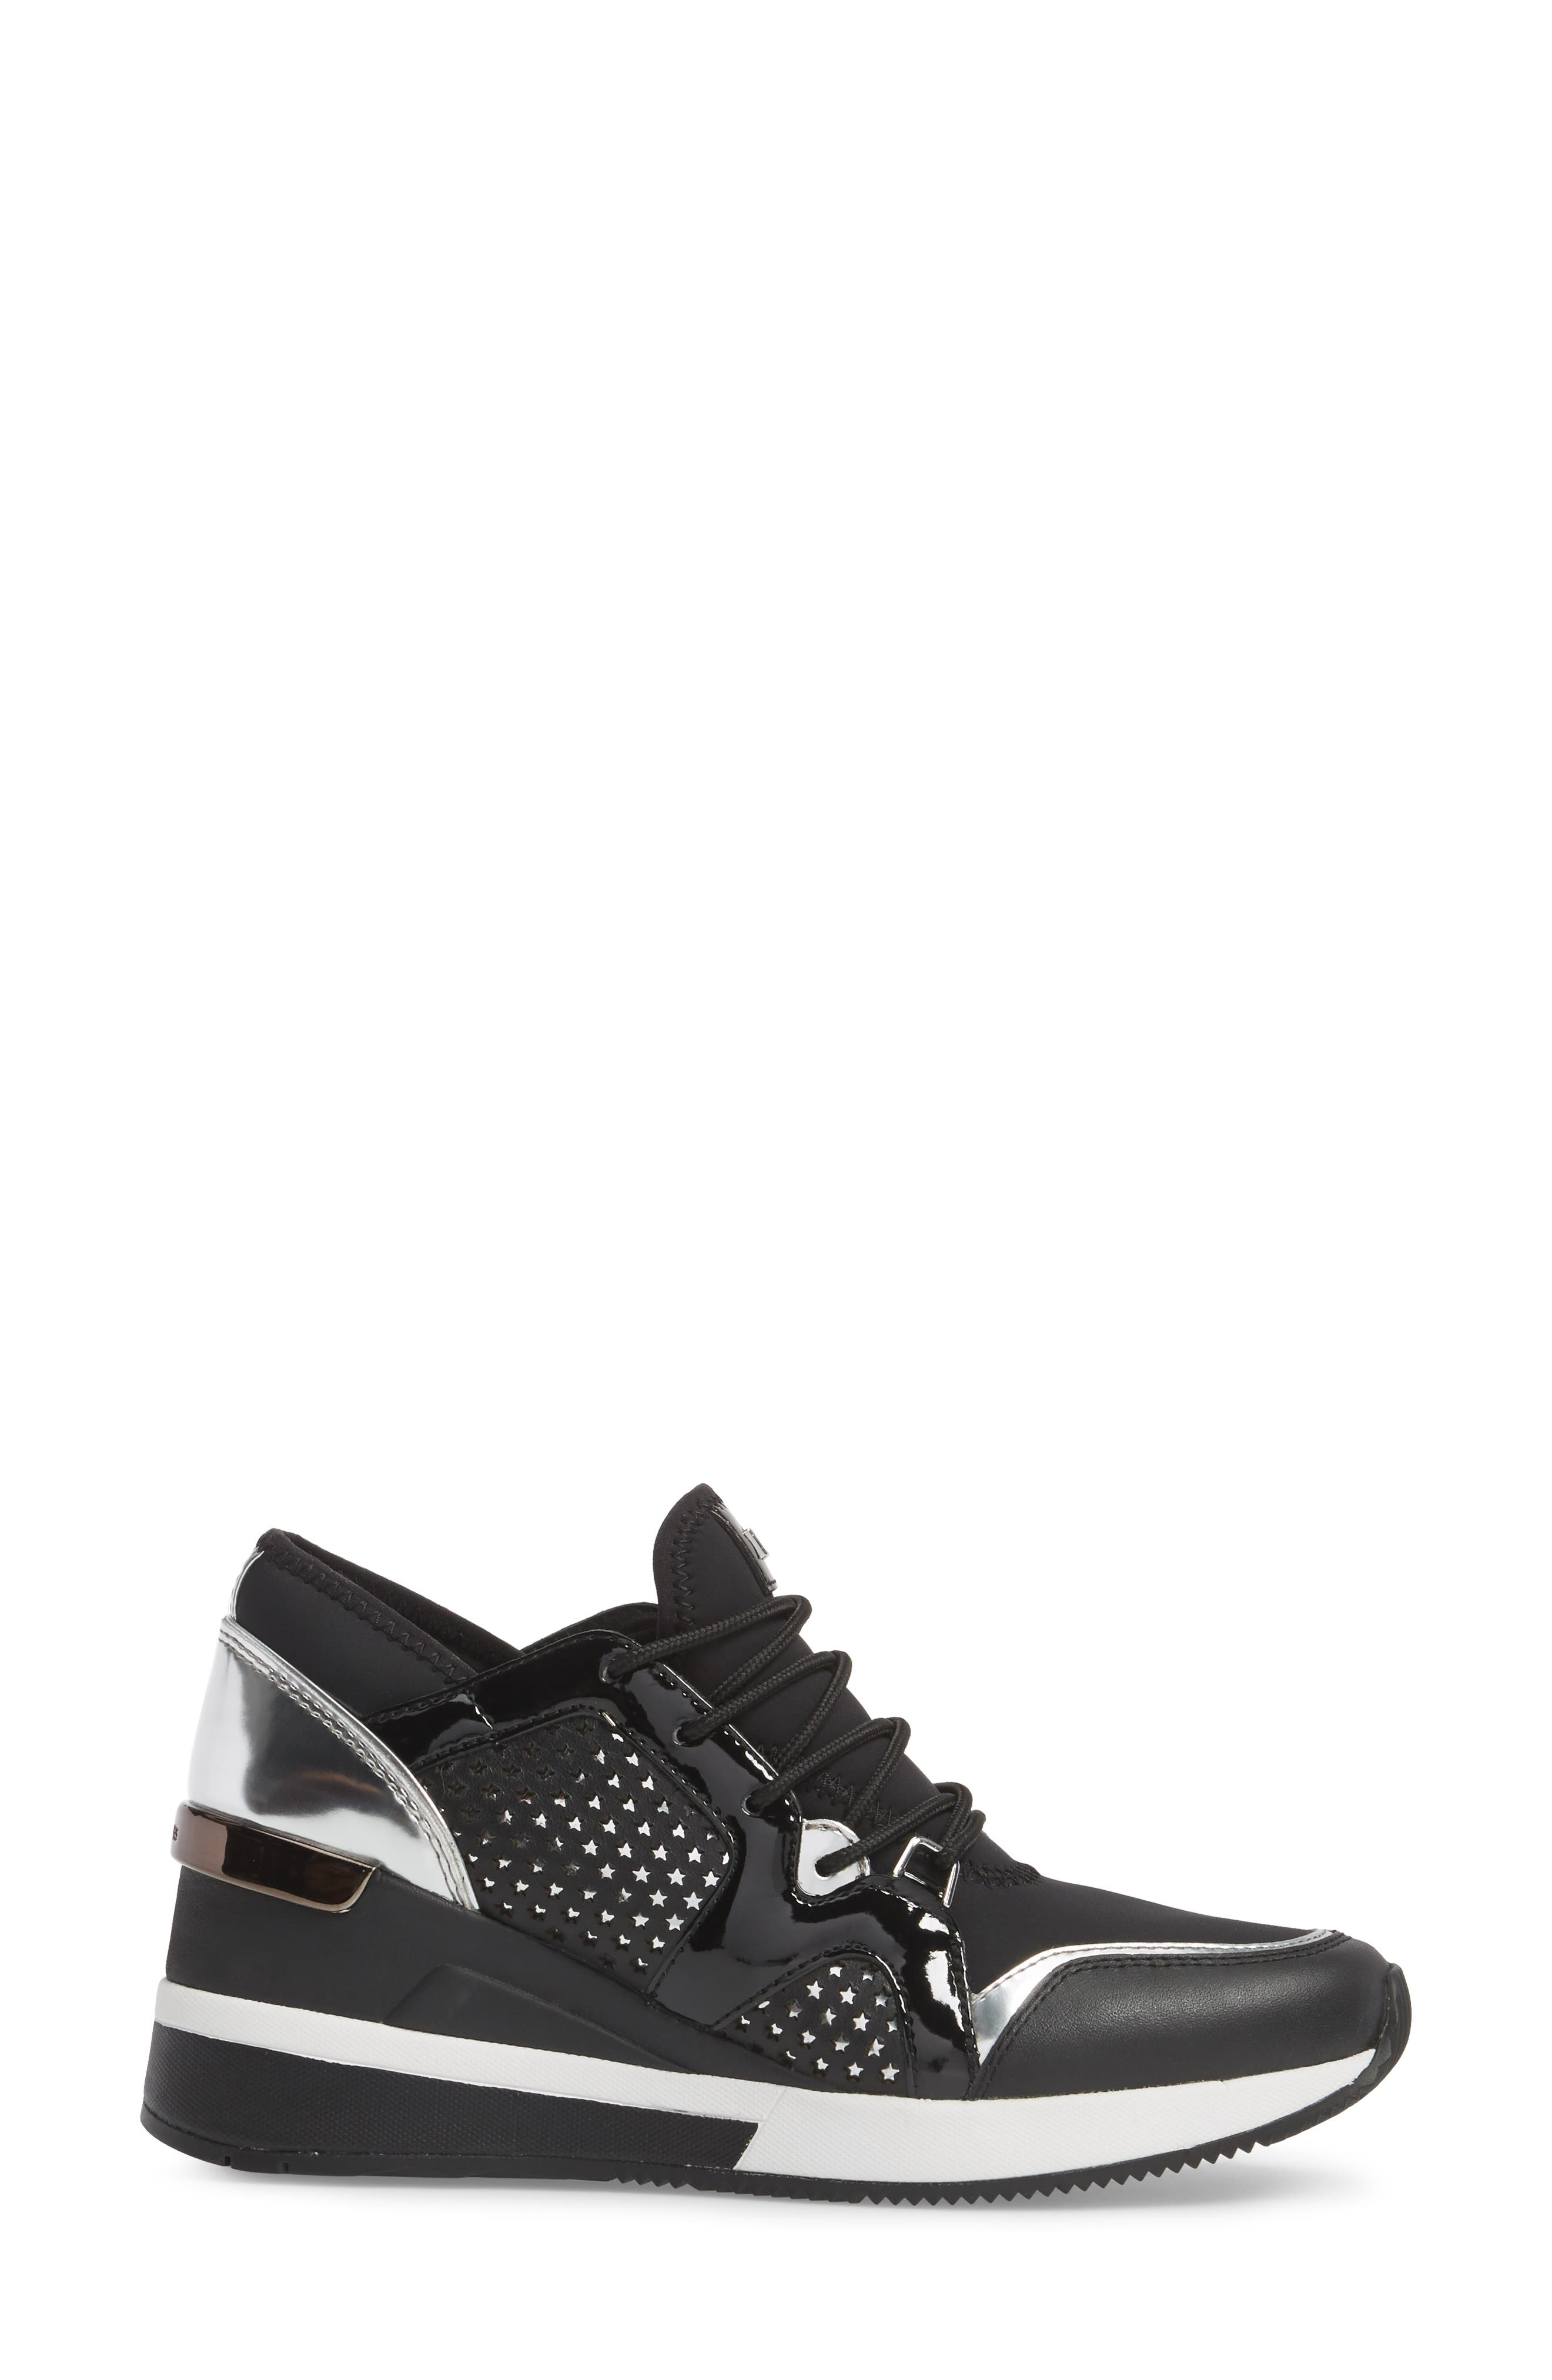 Scout Wedge Sneaker,                             Alternate thumbnail 3, color,                             Black Star